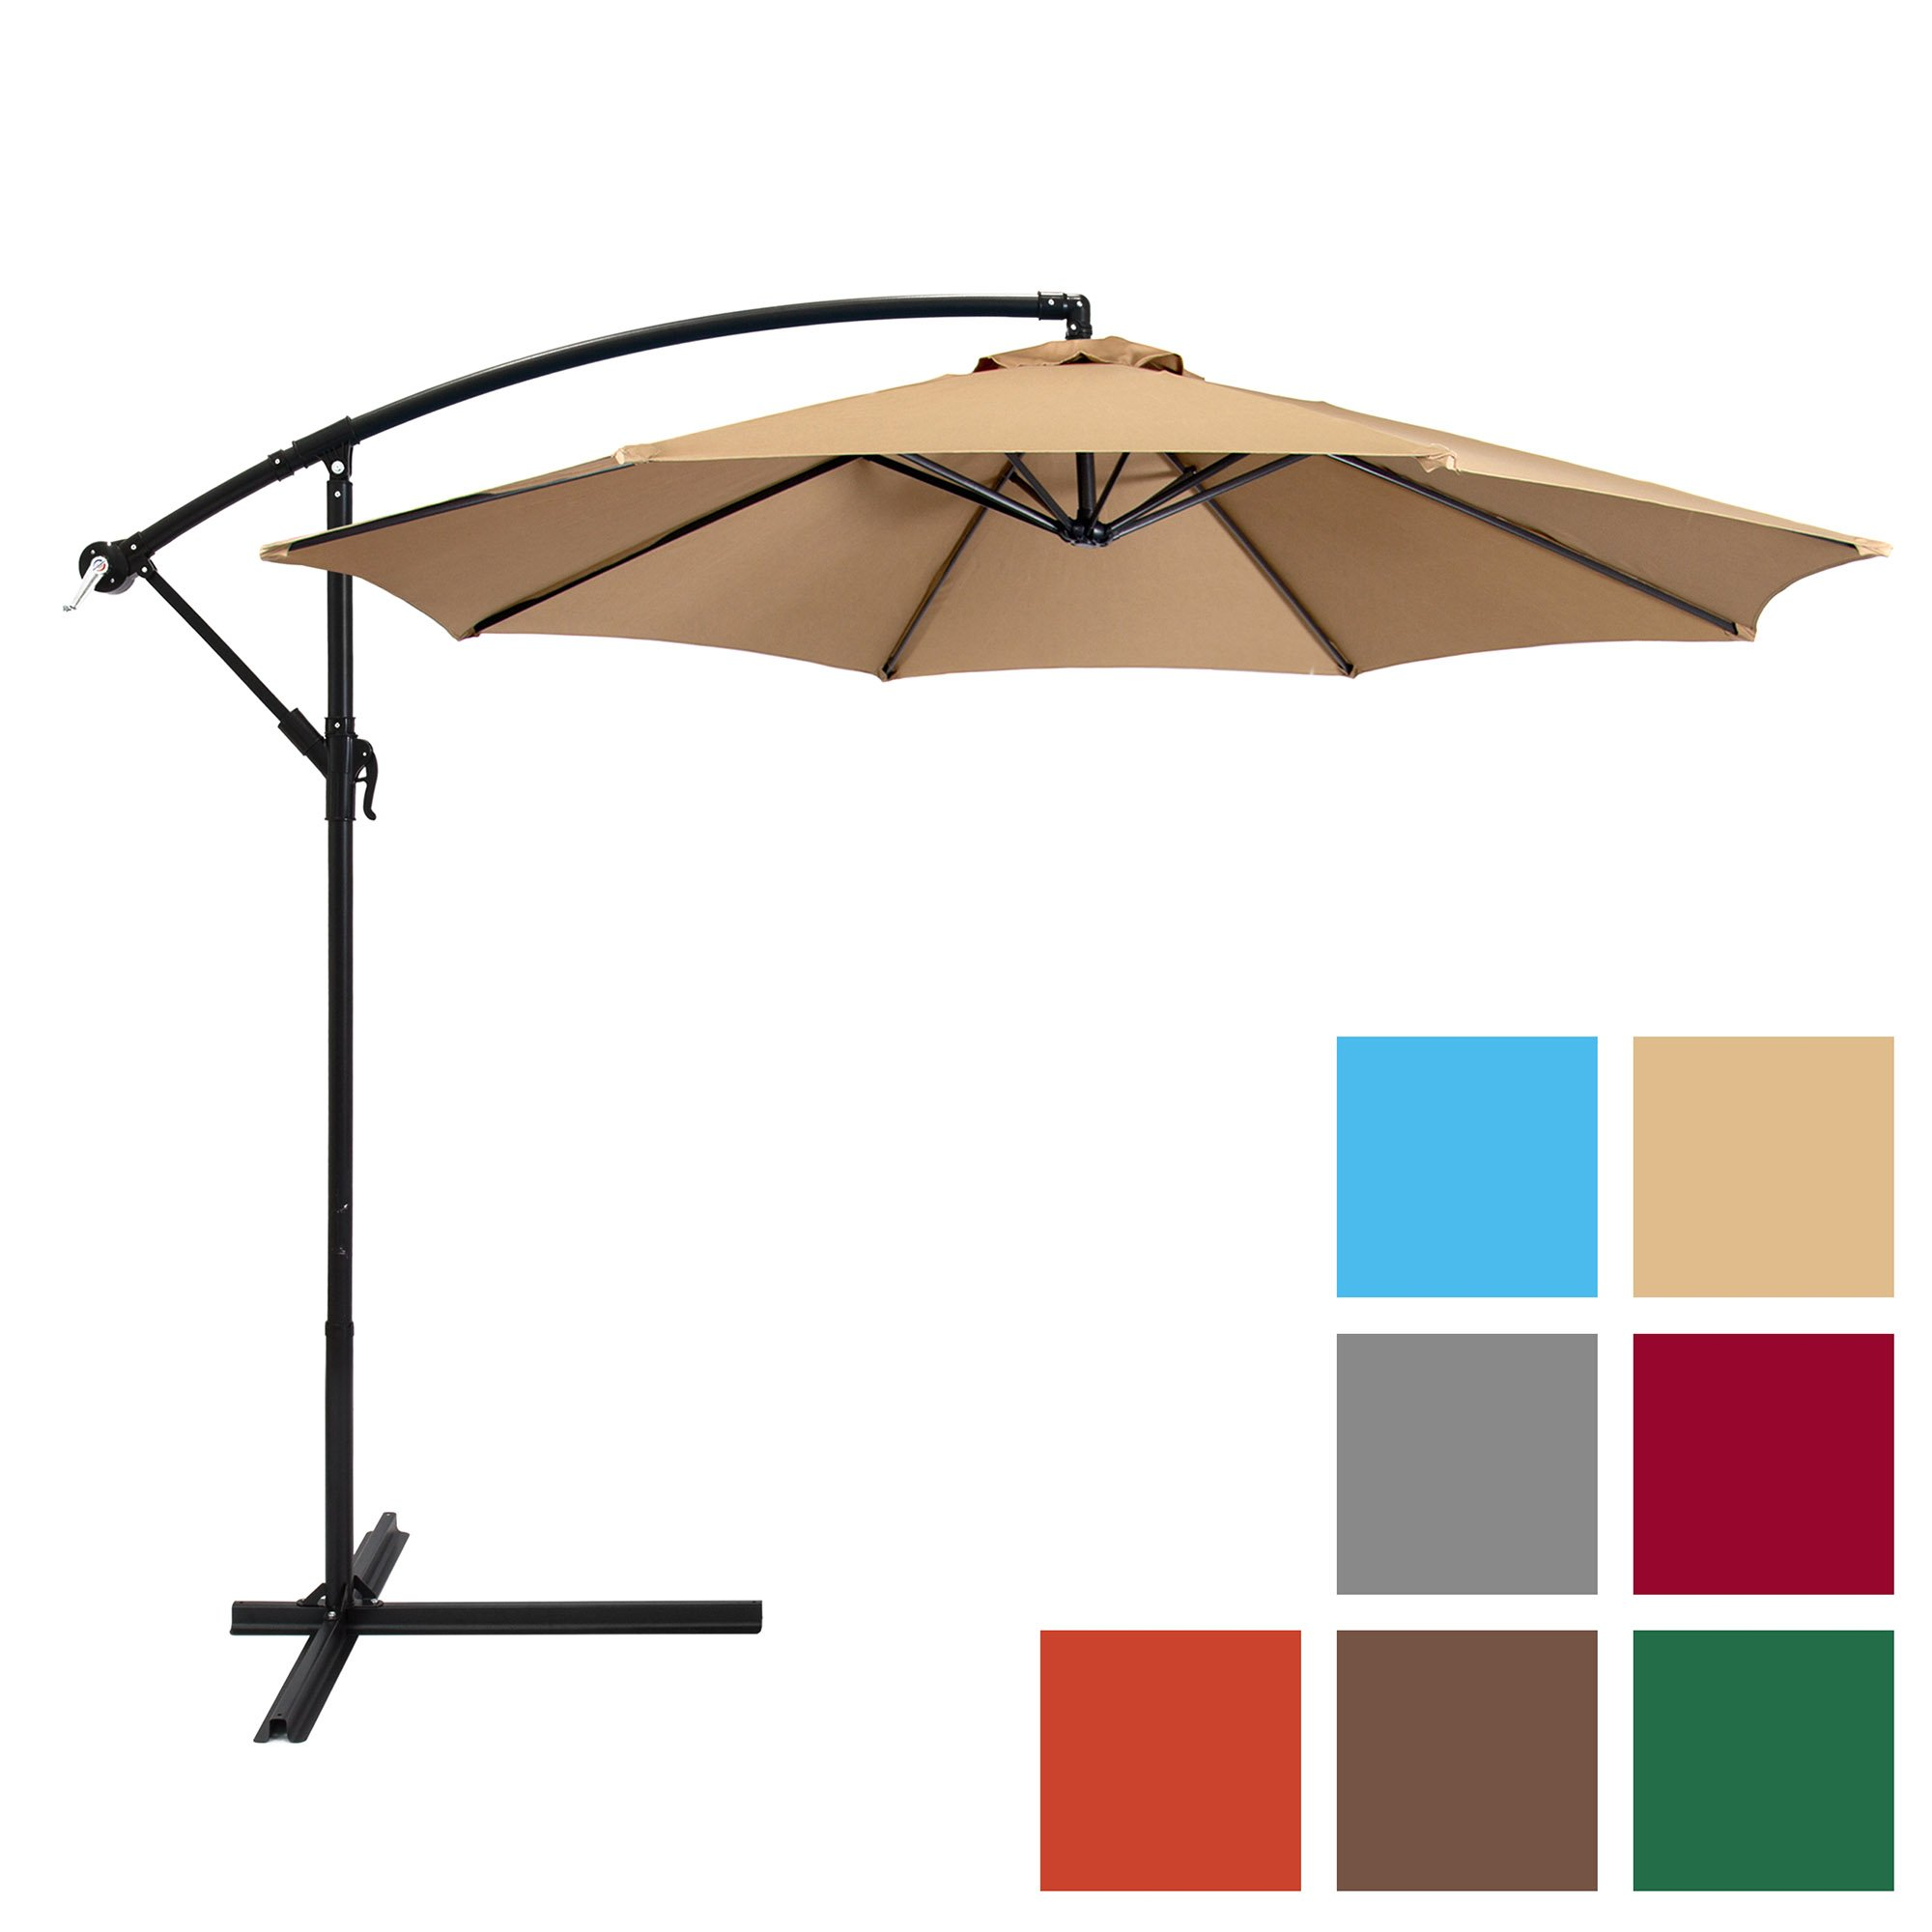 Best Choice Products 10ft Offset Hanging Market Patio Umbrella w/ Easy Tilt Adjustment, Polyester Shade, 8 Ribs for Backyard, Poolside, Lawn and Garden - Beige by Best Choice Products